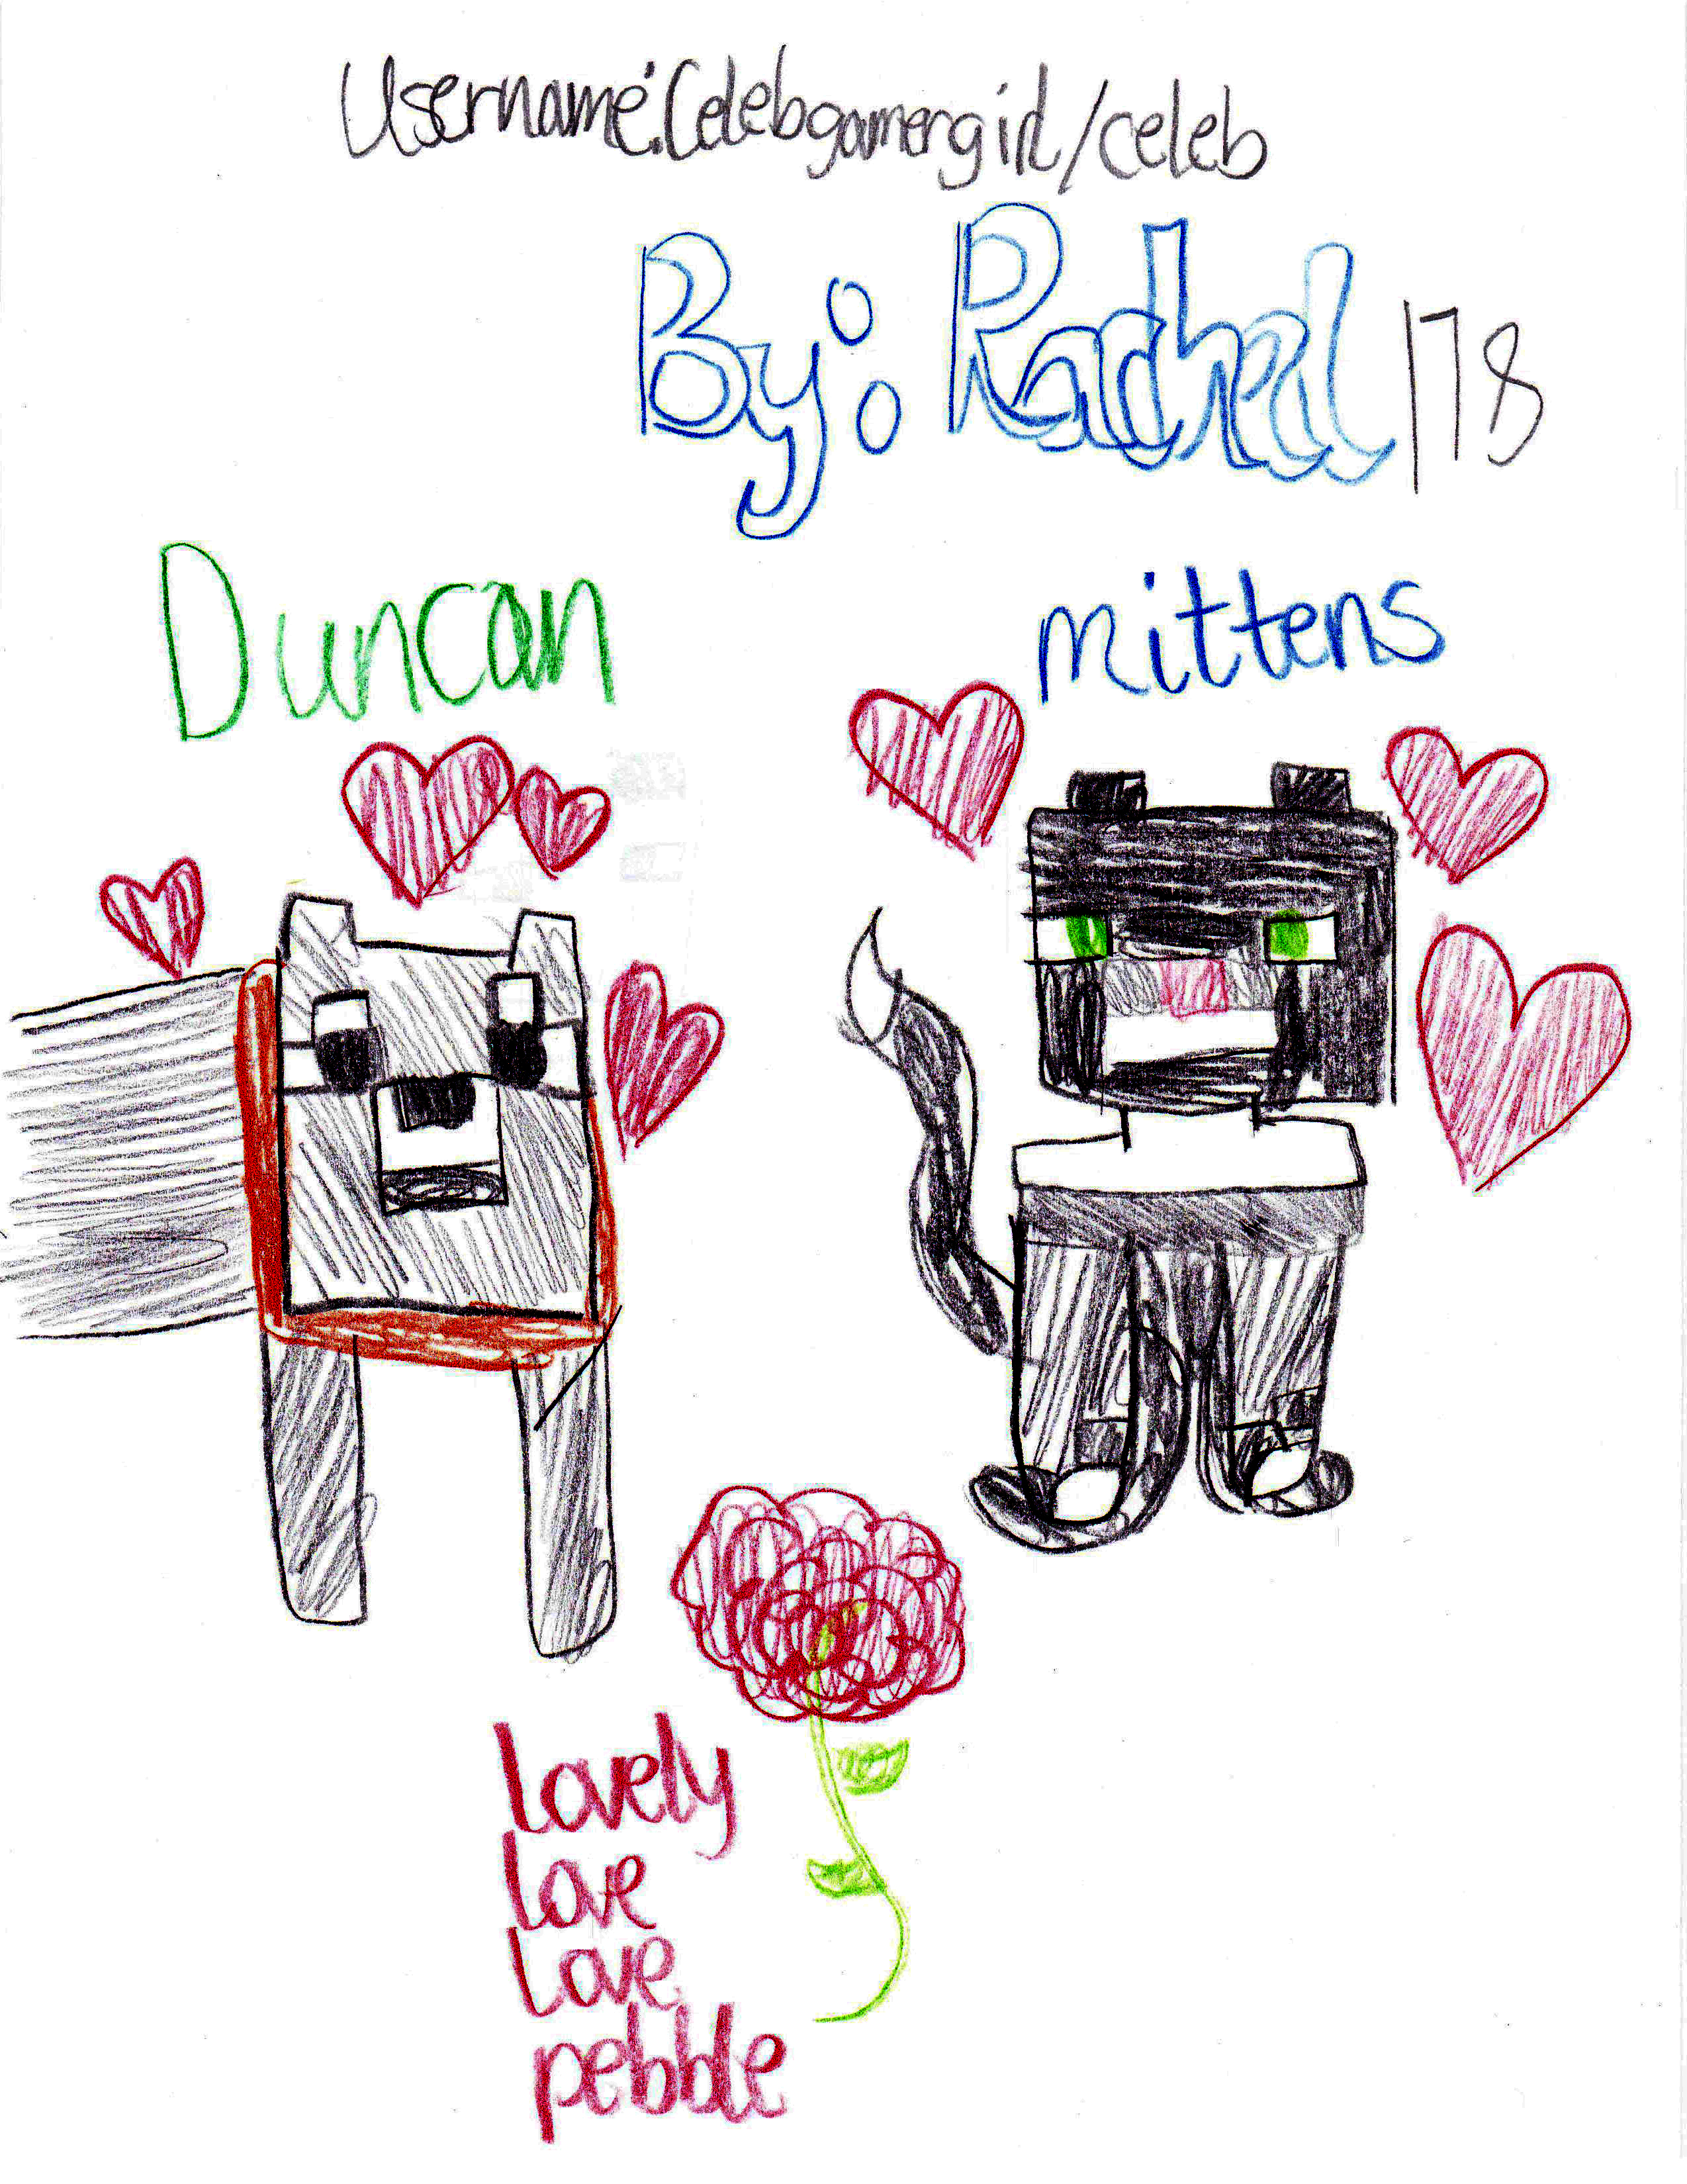 Duncan and Mittens